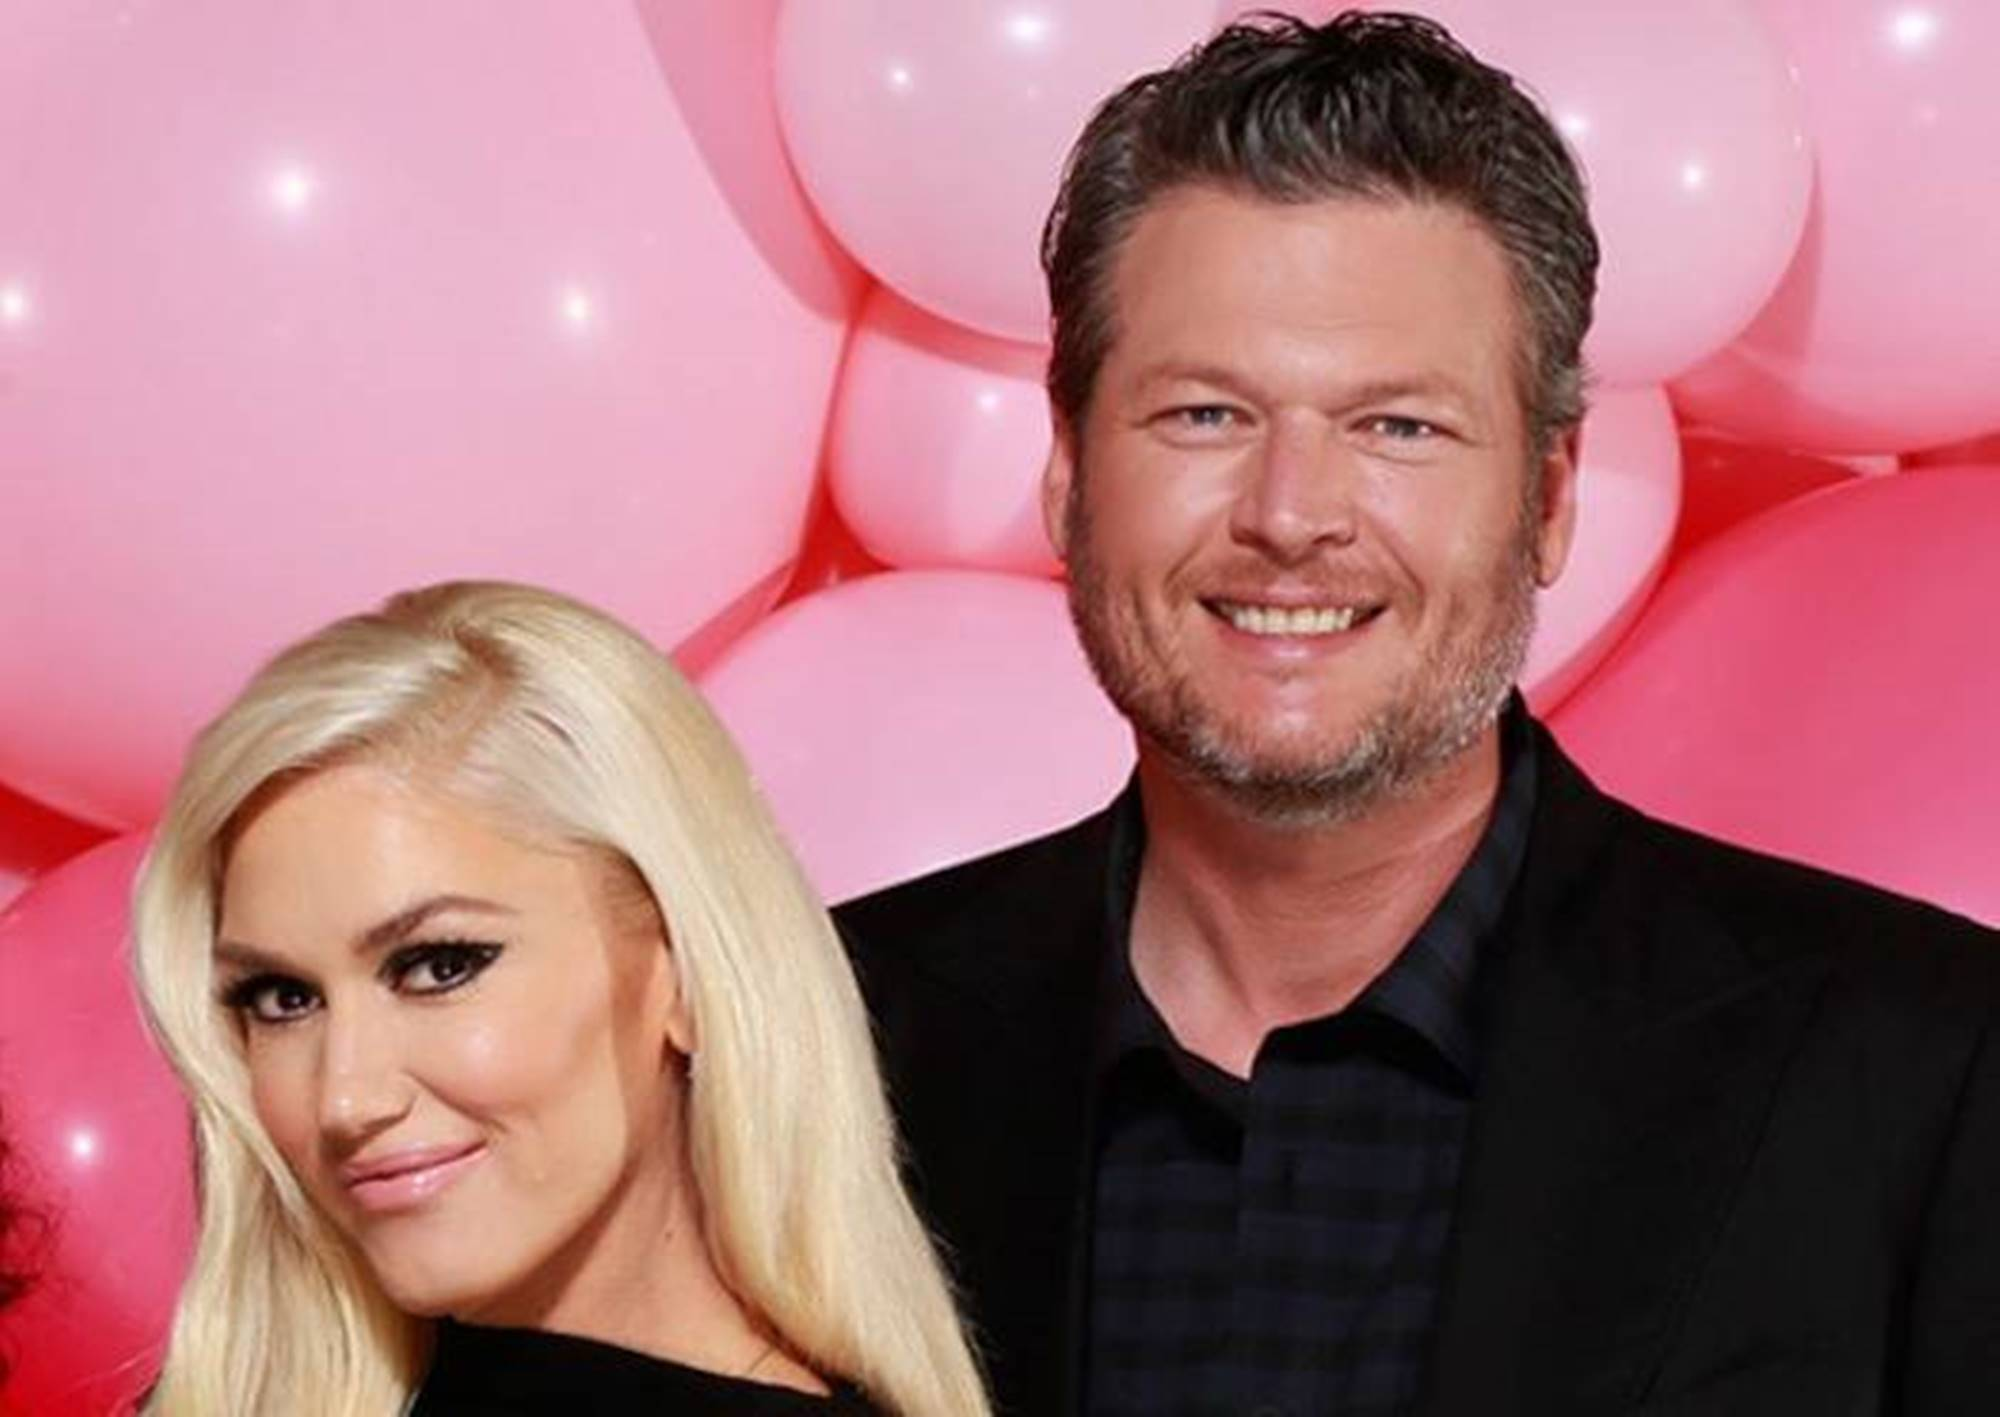 Gwen Stefani Blake Shelton Christmas Day